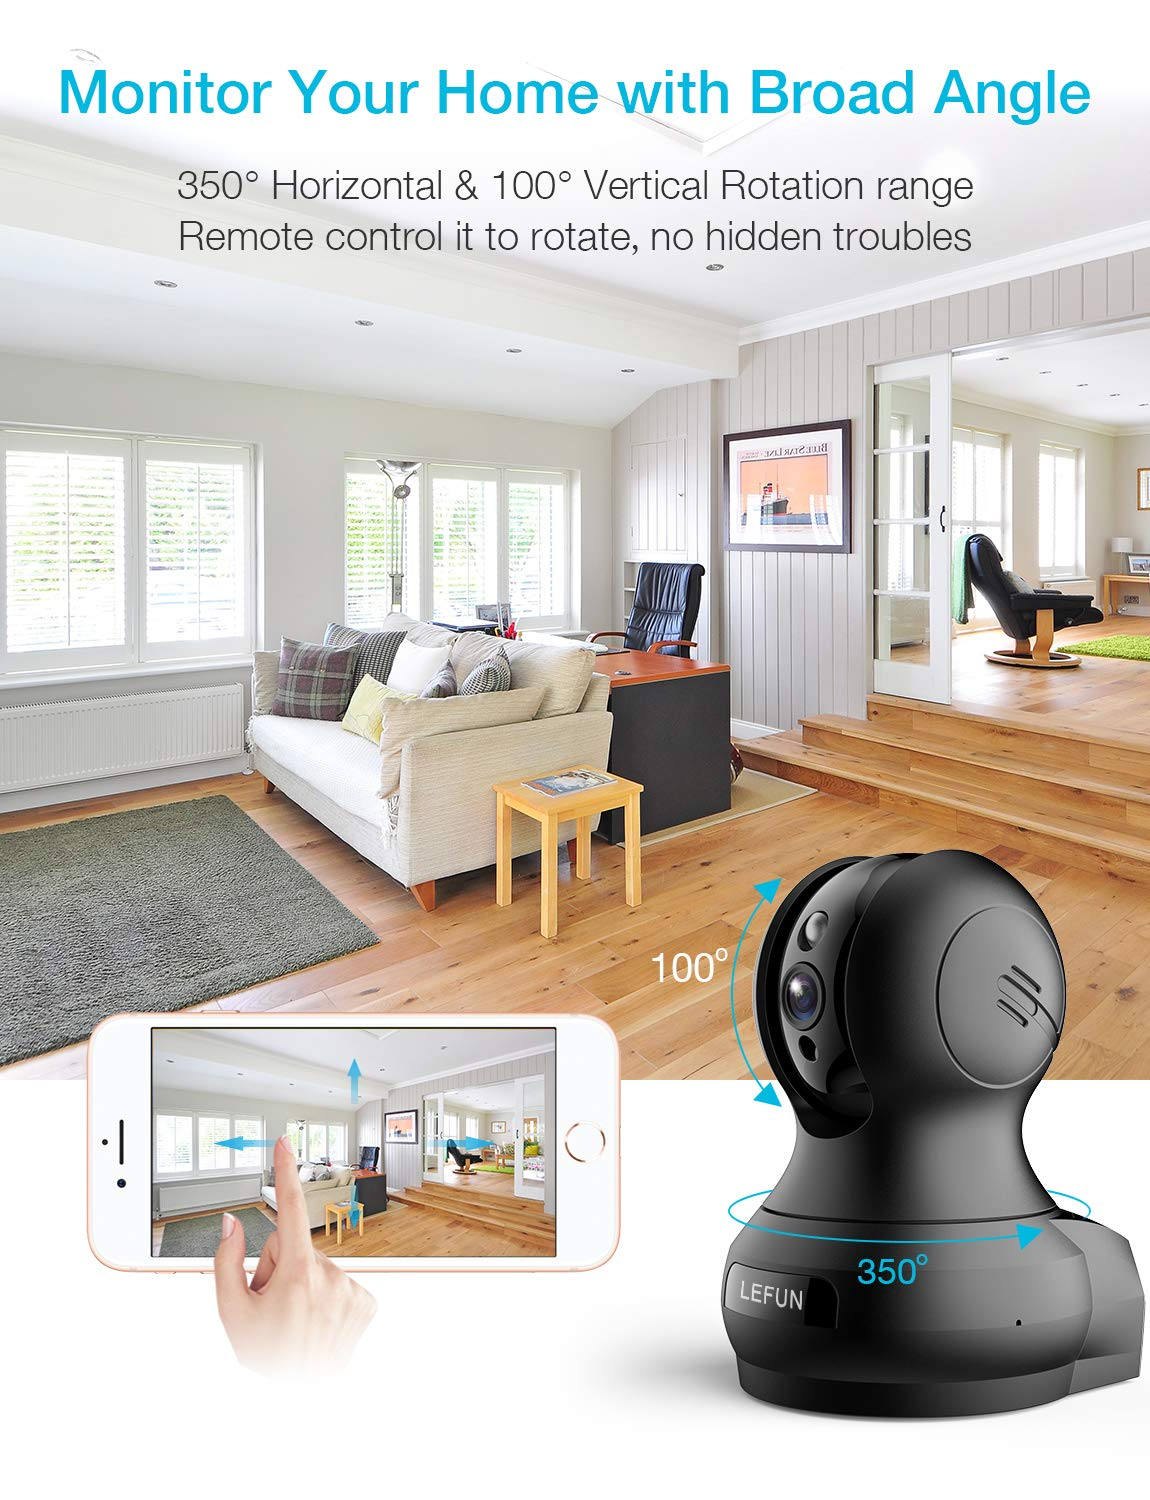 Wireless Security Camera WiFi Dog Pet Camera with 2 Way Audio Motion Detection Night Vision, Lefun IP Pan/Tilt/Zoom Home Surveillance Camera Cloud Cam Baby Monitor by Lefun